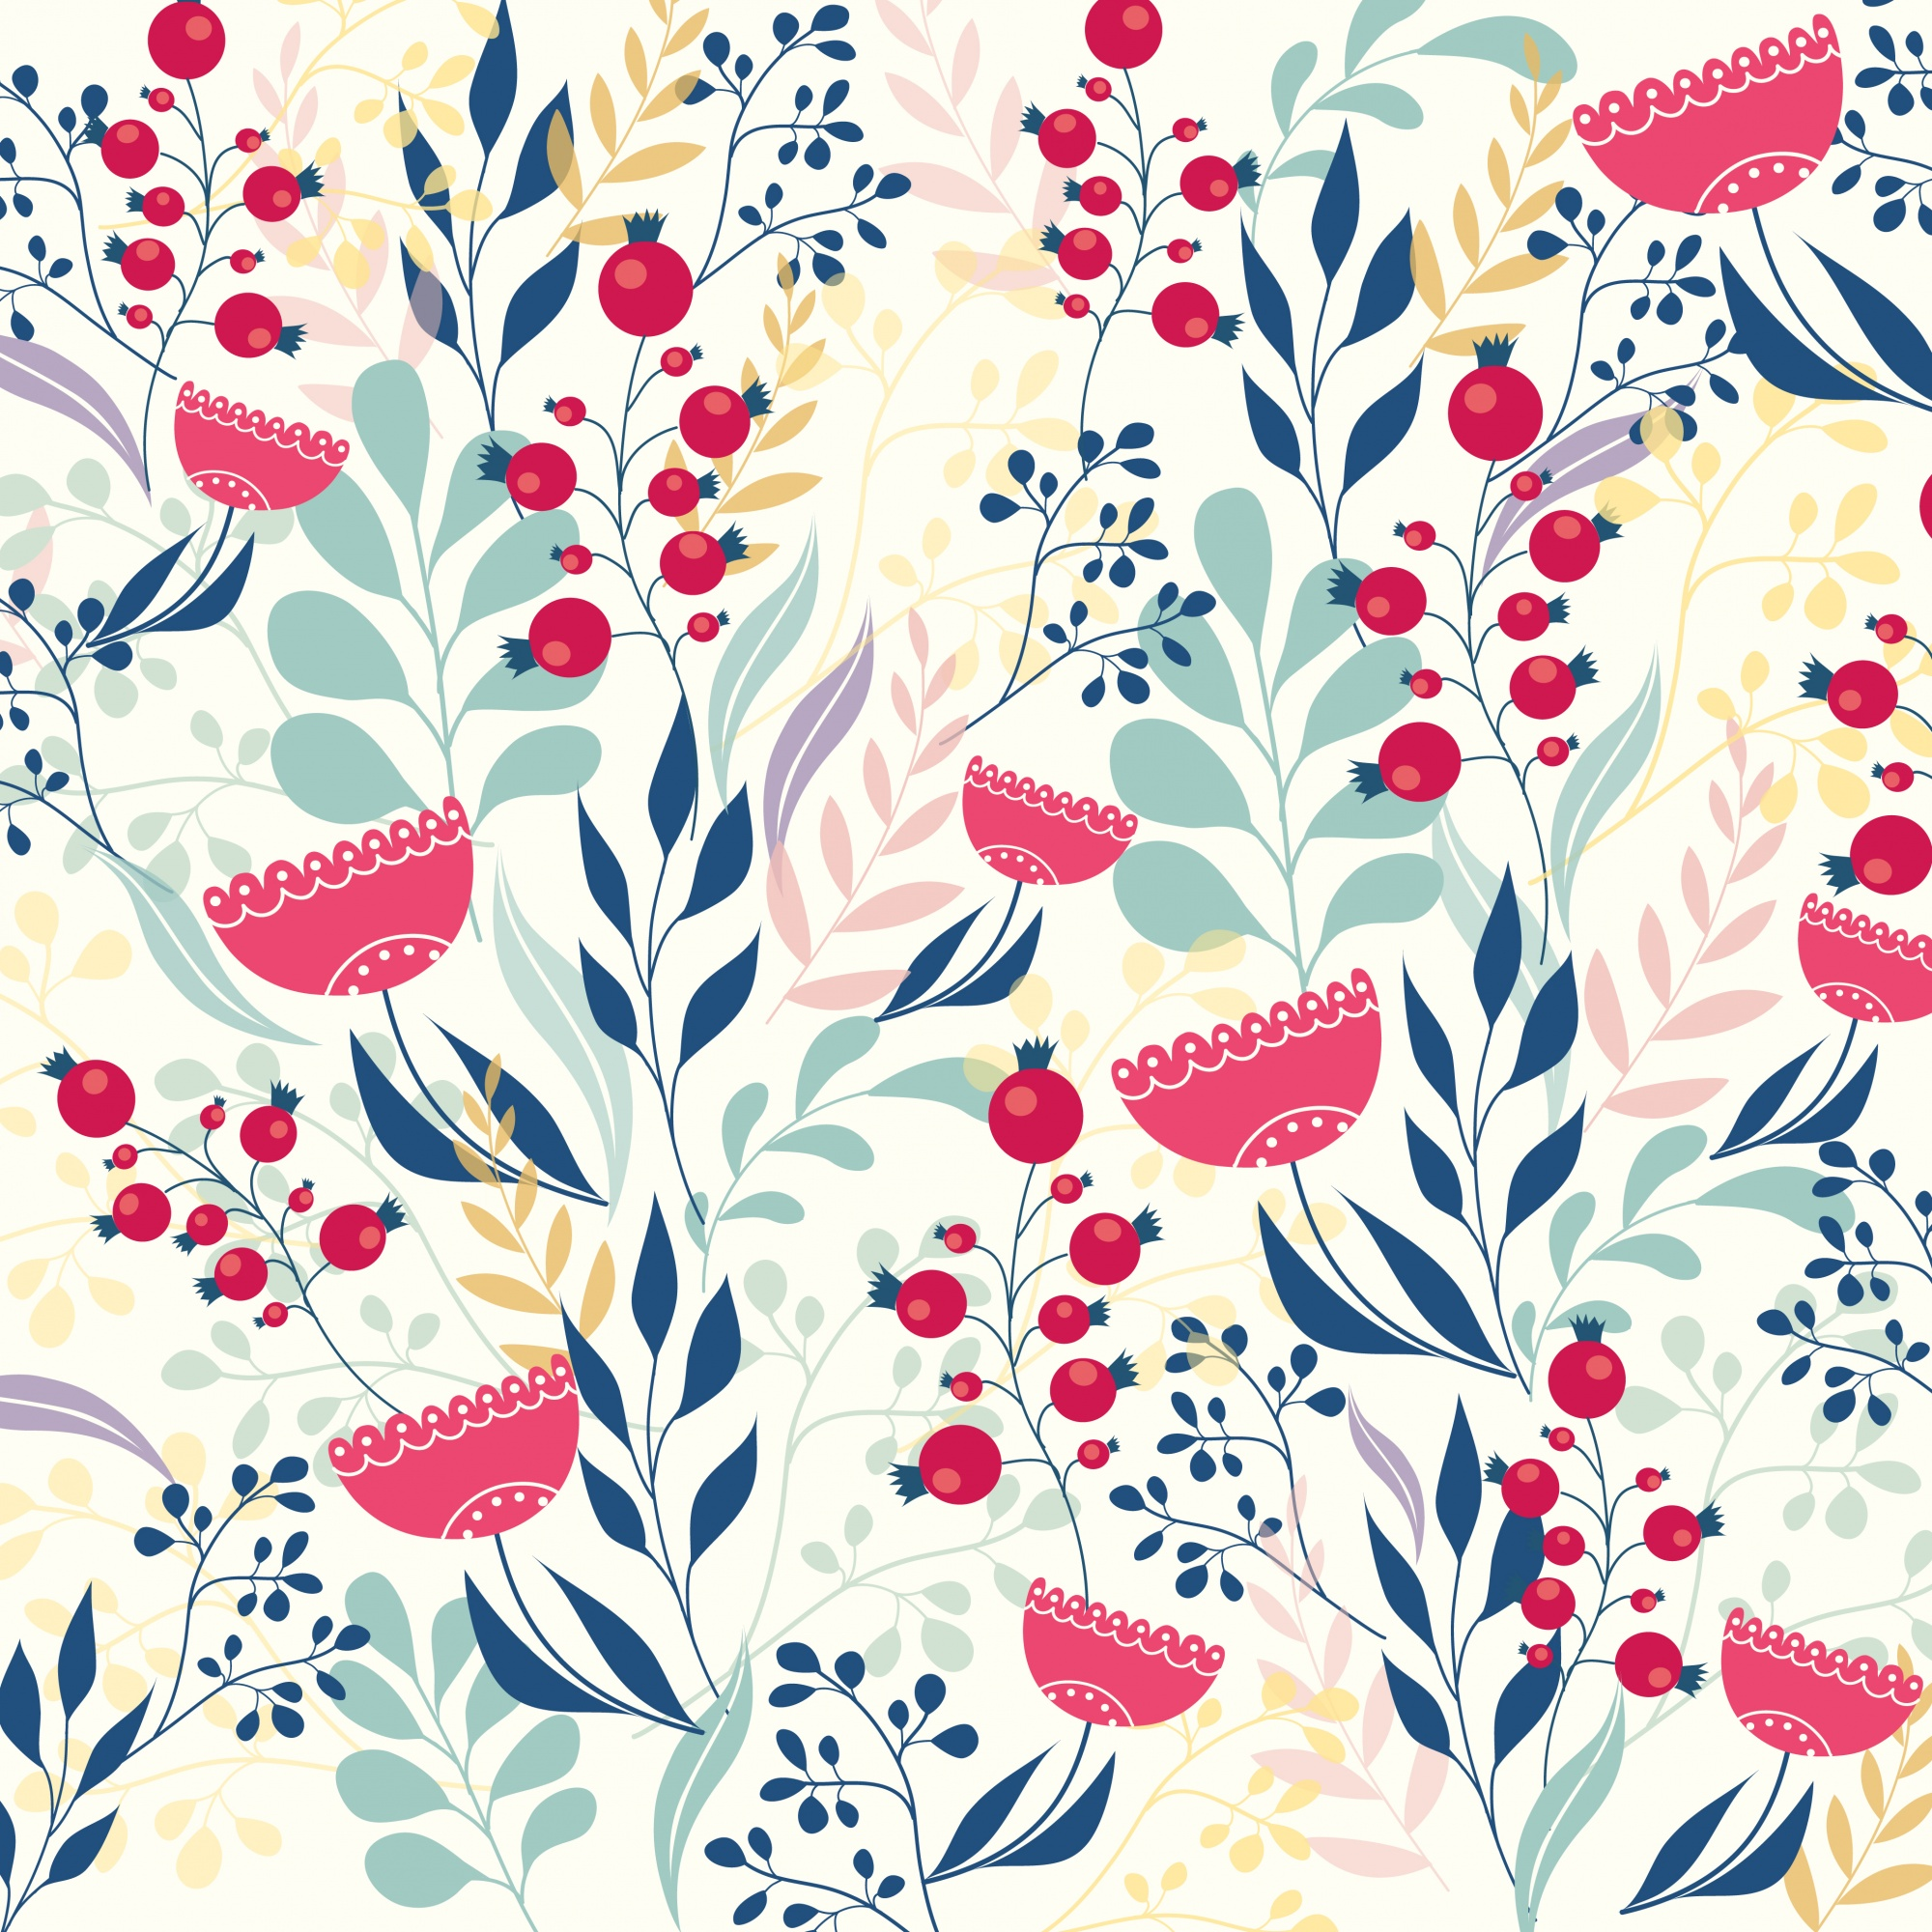 Beautiful modern floral pattern